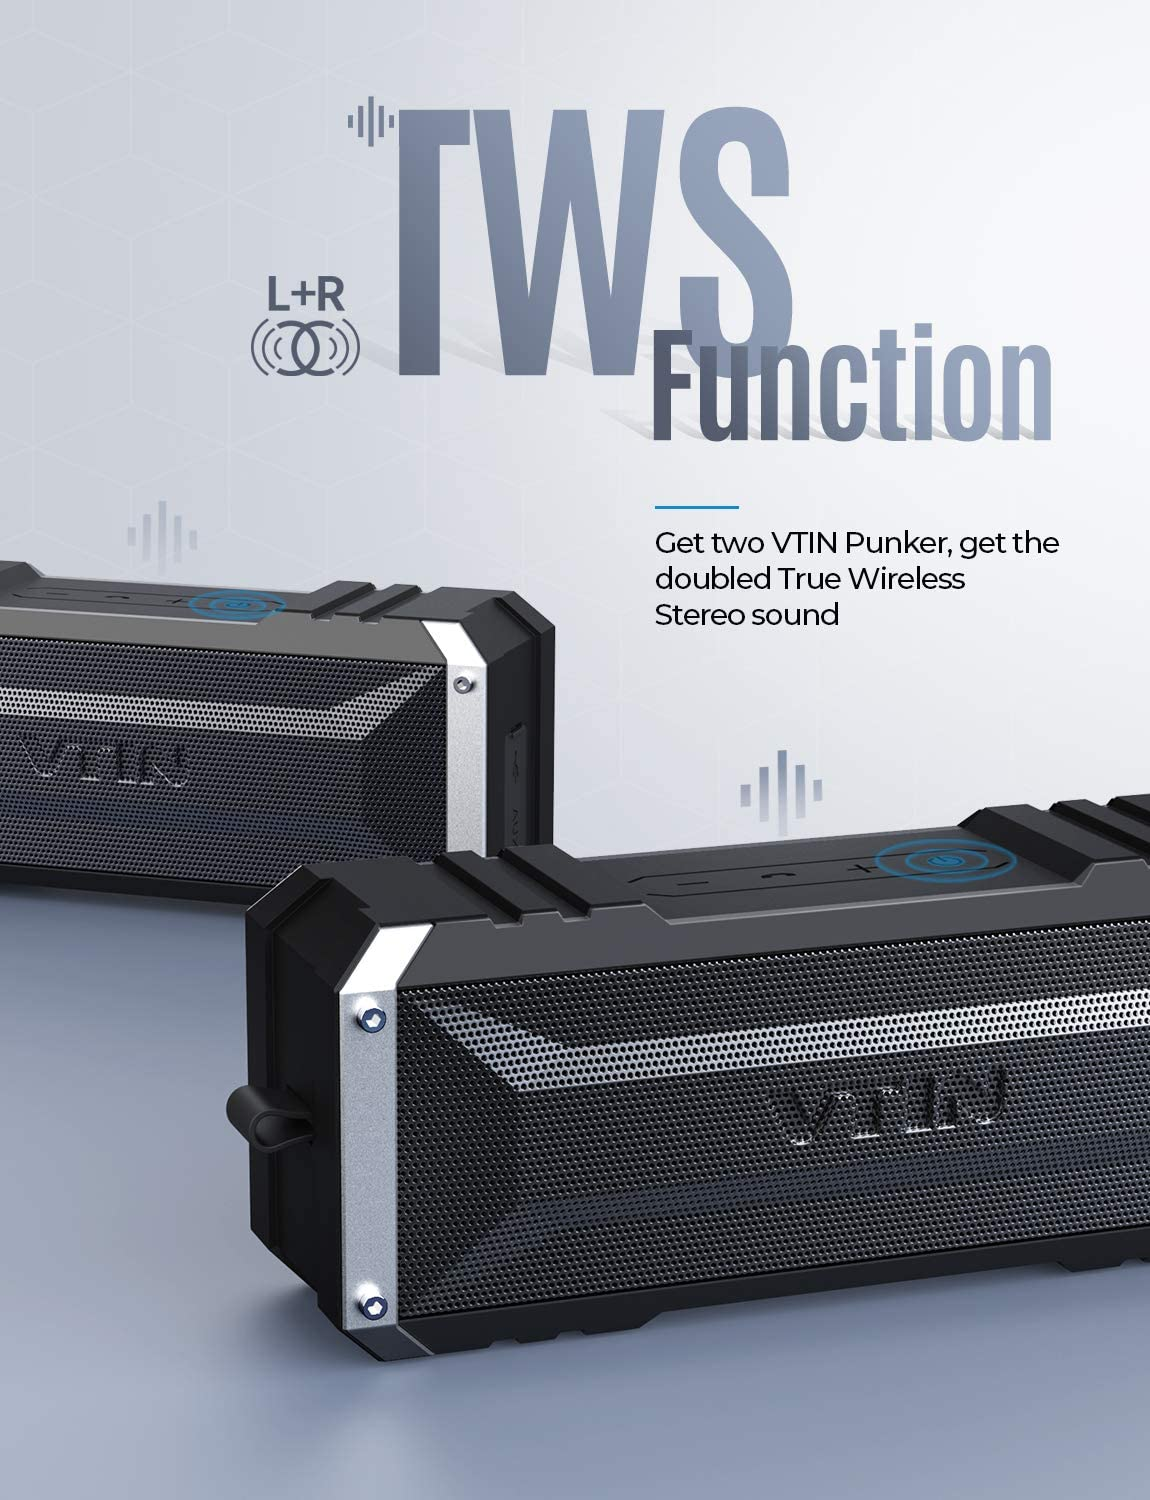 Wireless Speaker for home IPX6 Waterproof Speaker Pool Detachable Hook Loud Stereo Sound V5.0 Portable Bluetooth Speaker with TWS 30H Long Playtime Backyard Party Vtin 20W Bluetooth Speakers